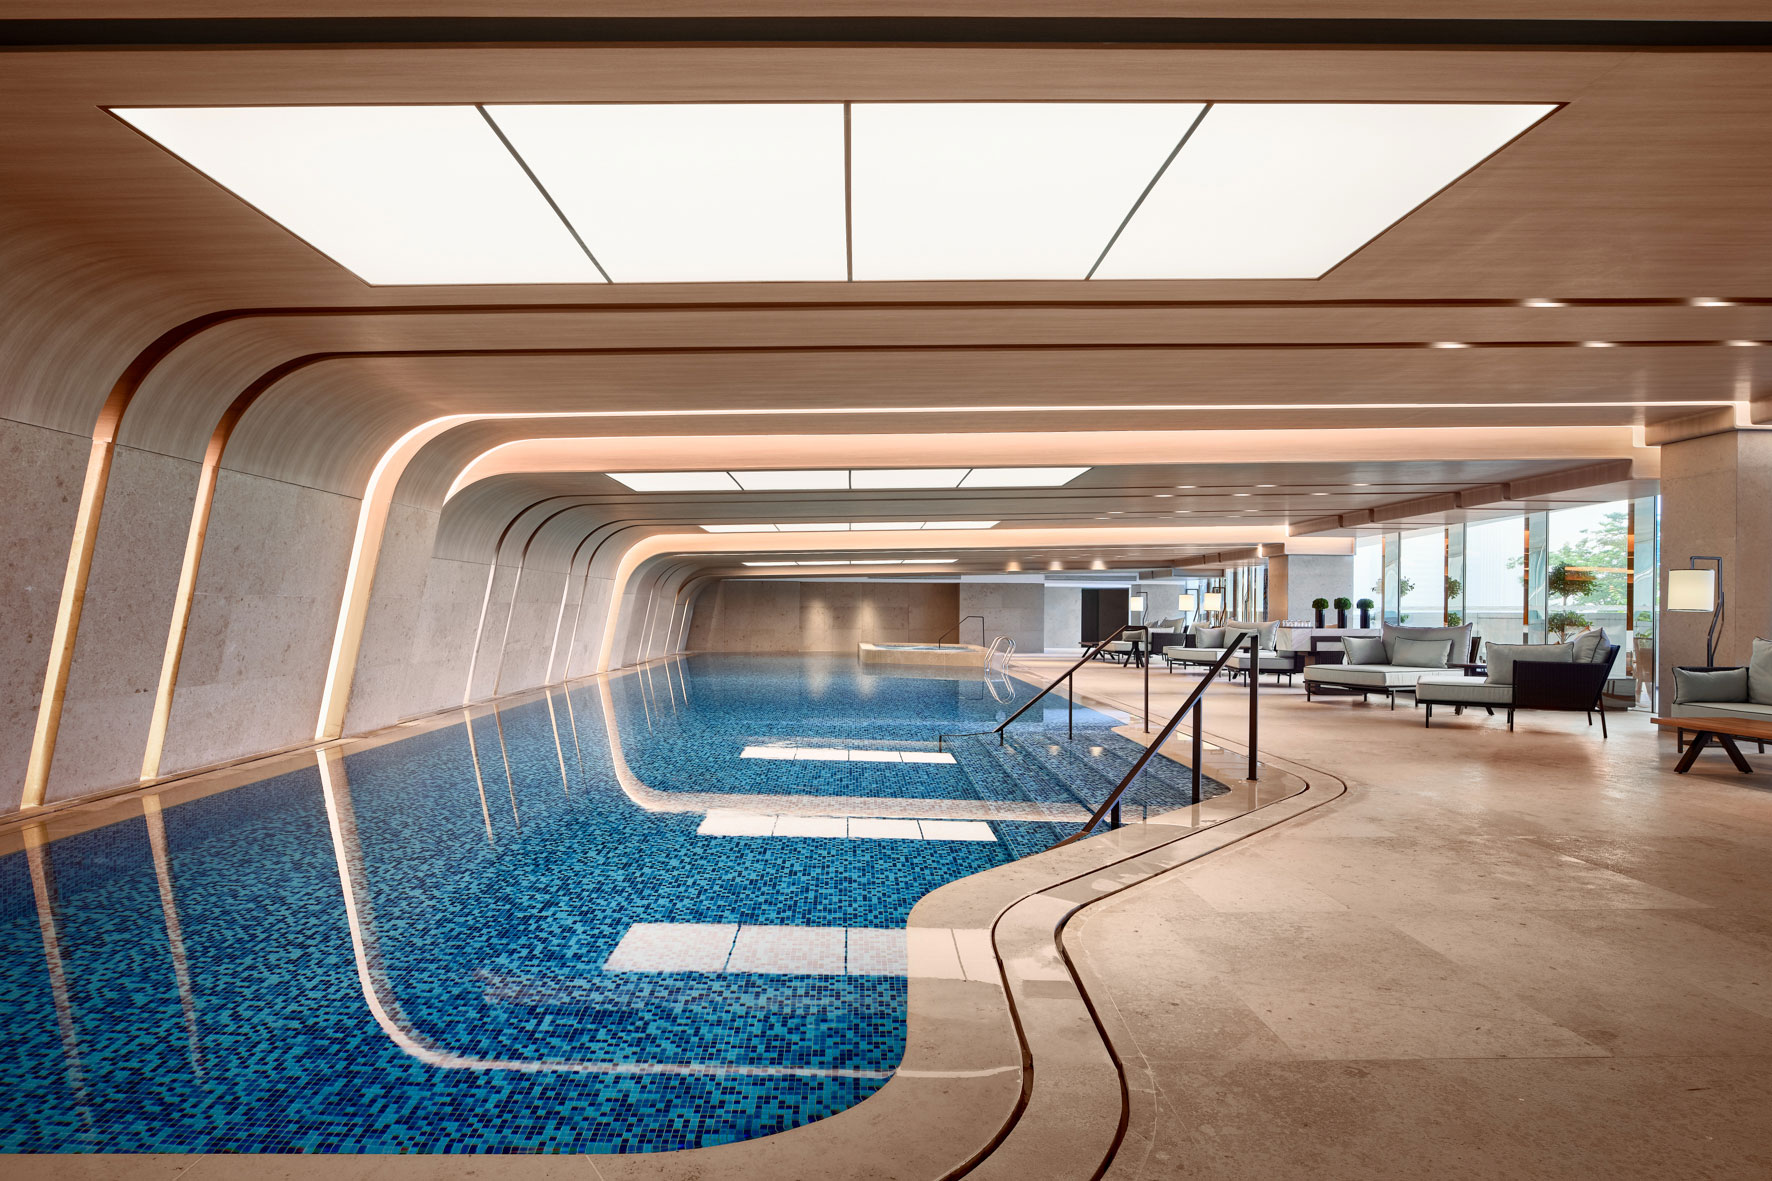 Owen Raggett, Architectural photographer, Singapore. Conrad Hangzhou pool, China